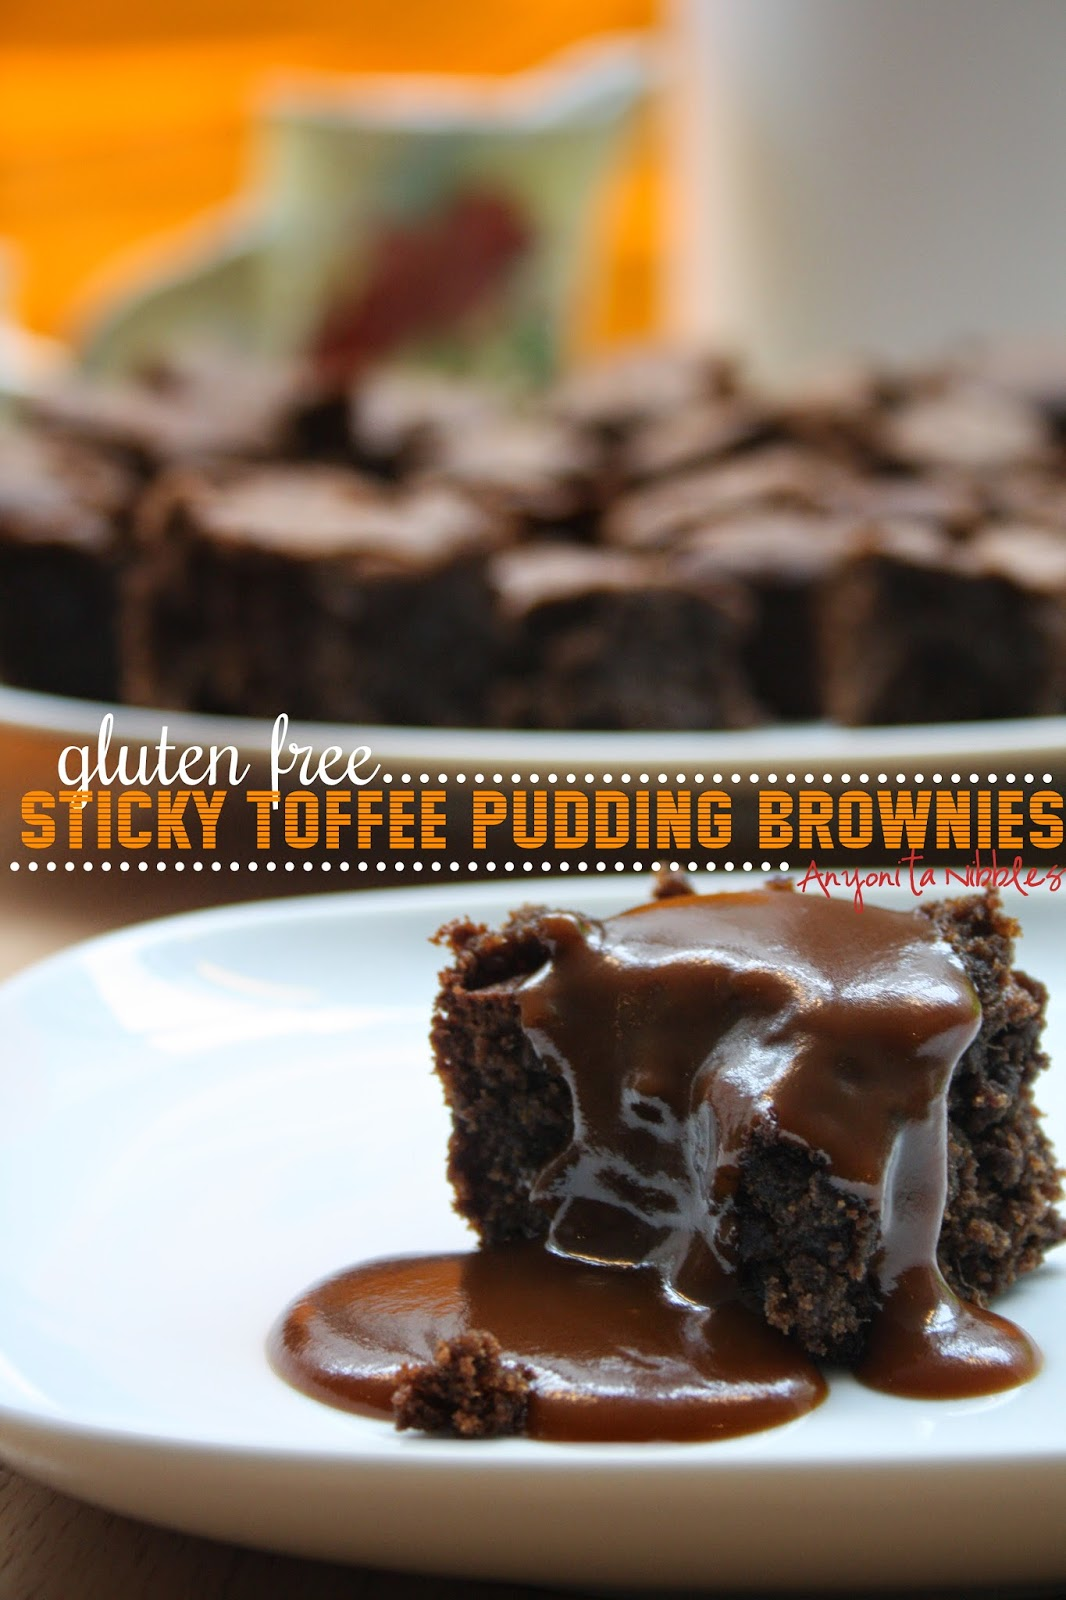 Gluten Free Sticky Toffee Pudding Brownies from Anyonita Nibbles